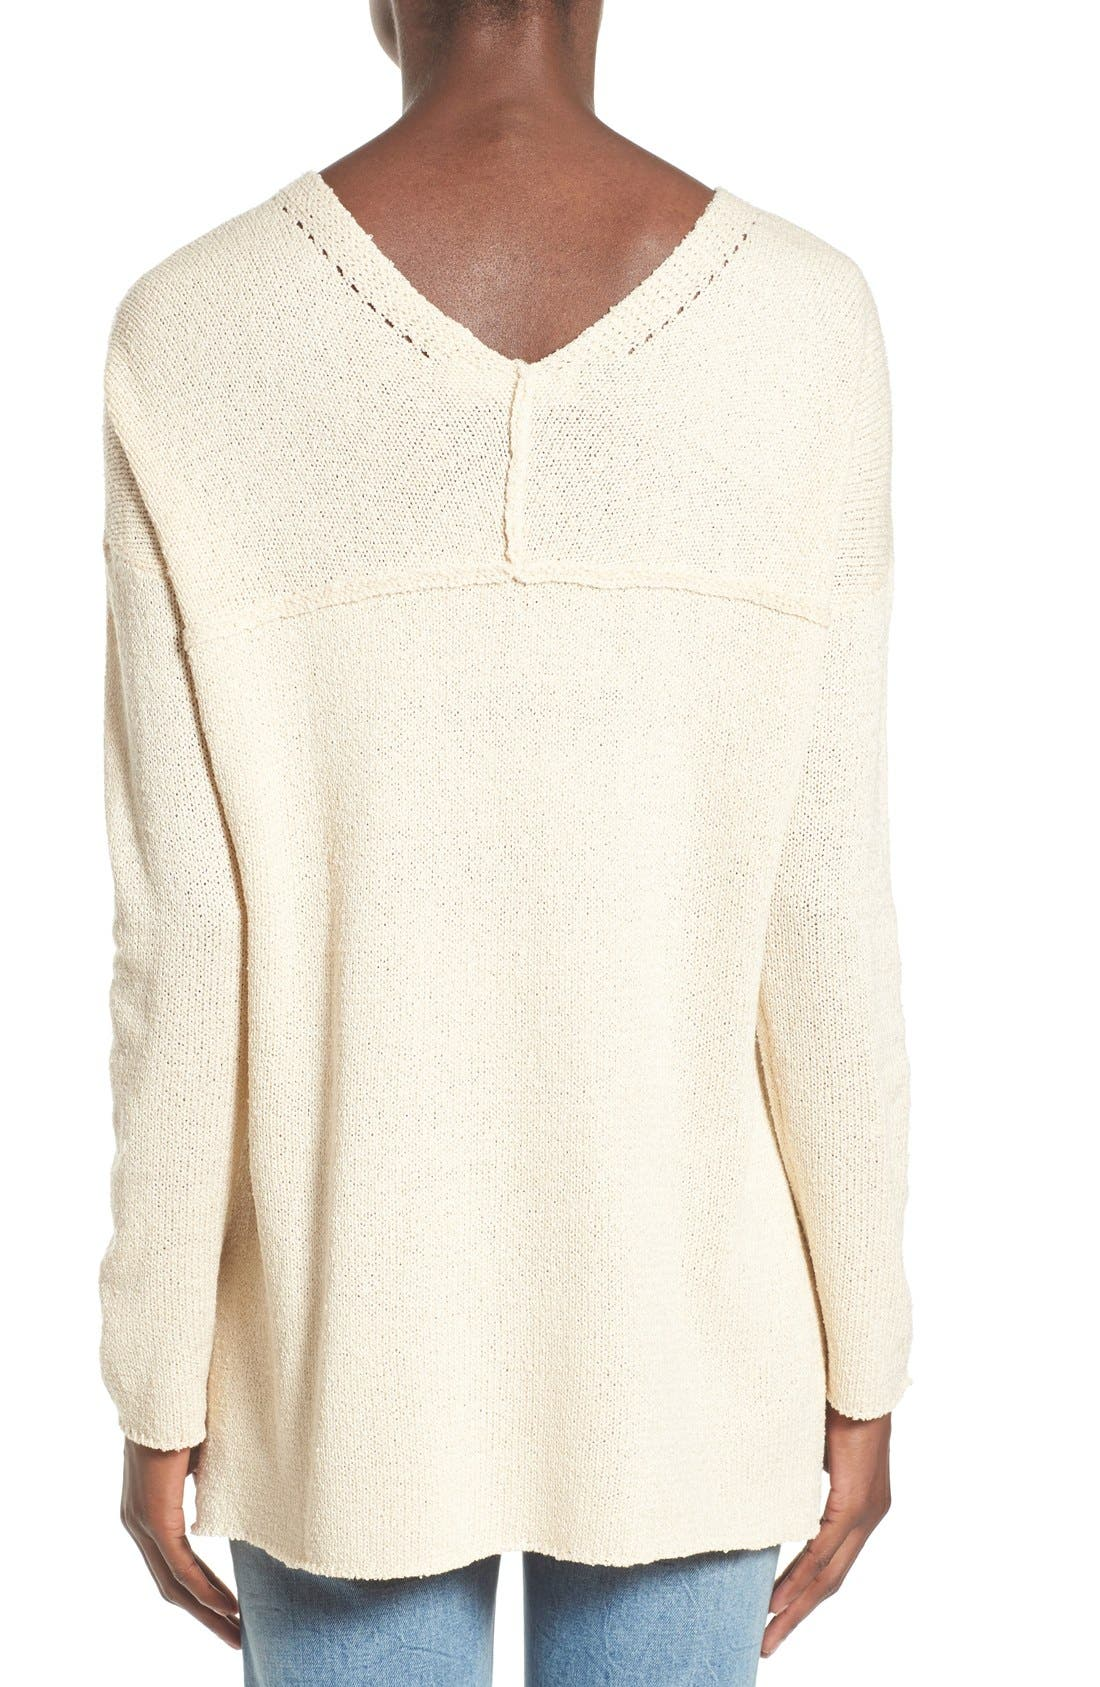 ASTR Lace-Up Sweater,                             Alternate thumbnail 16, color,